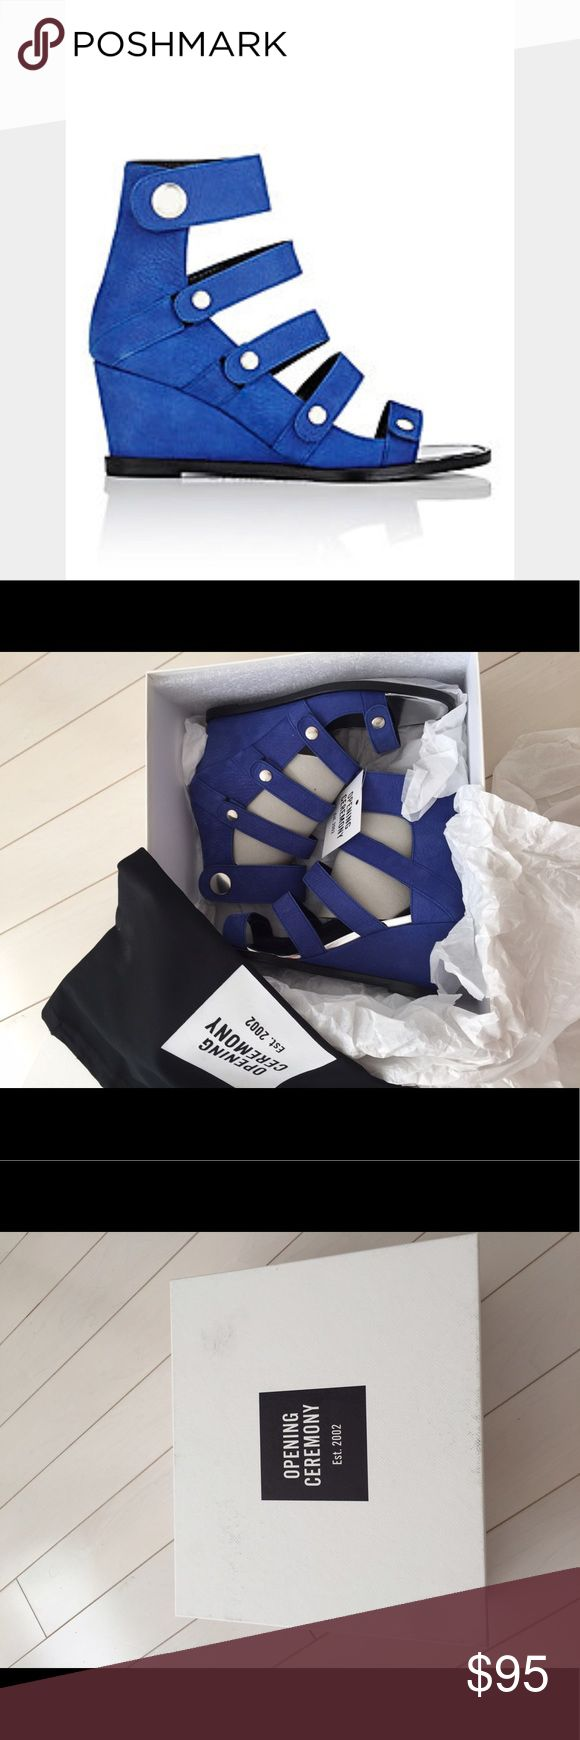 Opening ceremony Olivia wedge in blue size 7 New New in box and with dust bag. Size 7. No trade Opening Ceremony Shoes Wedges